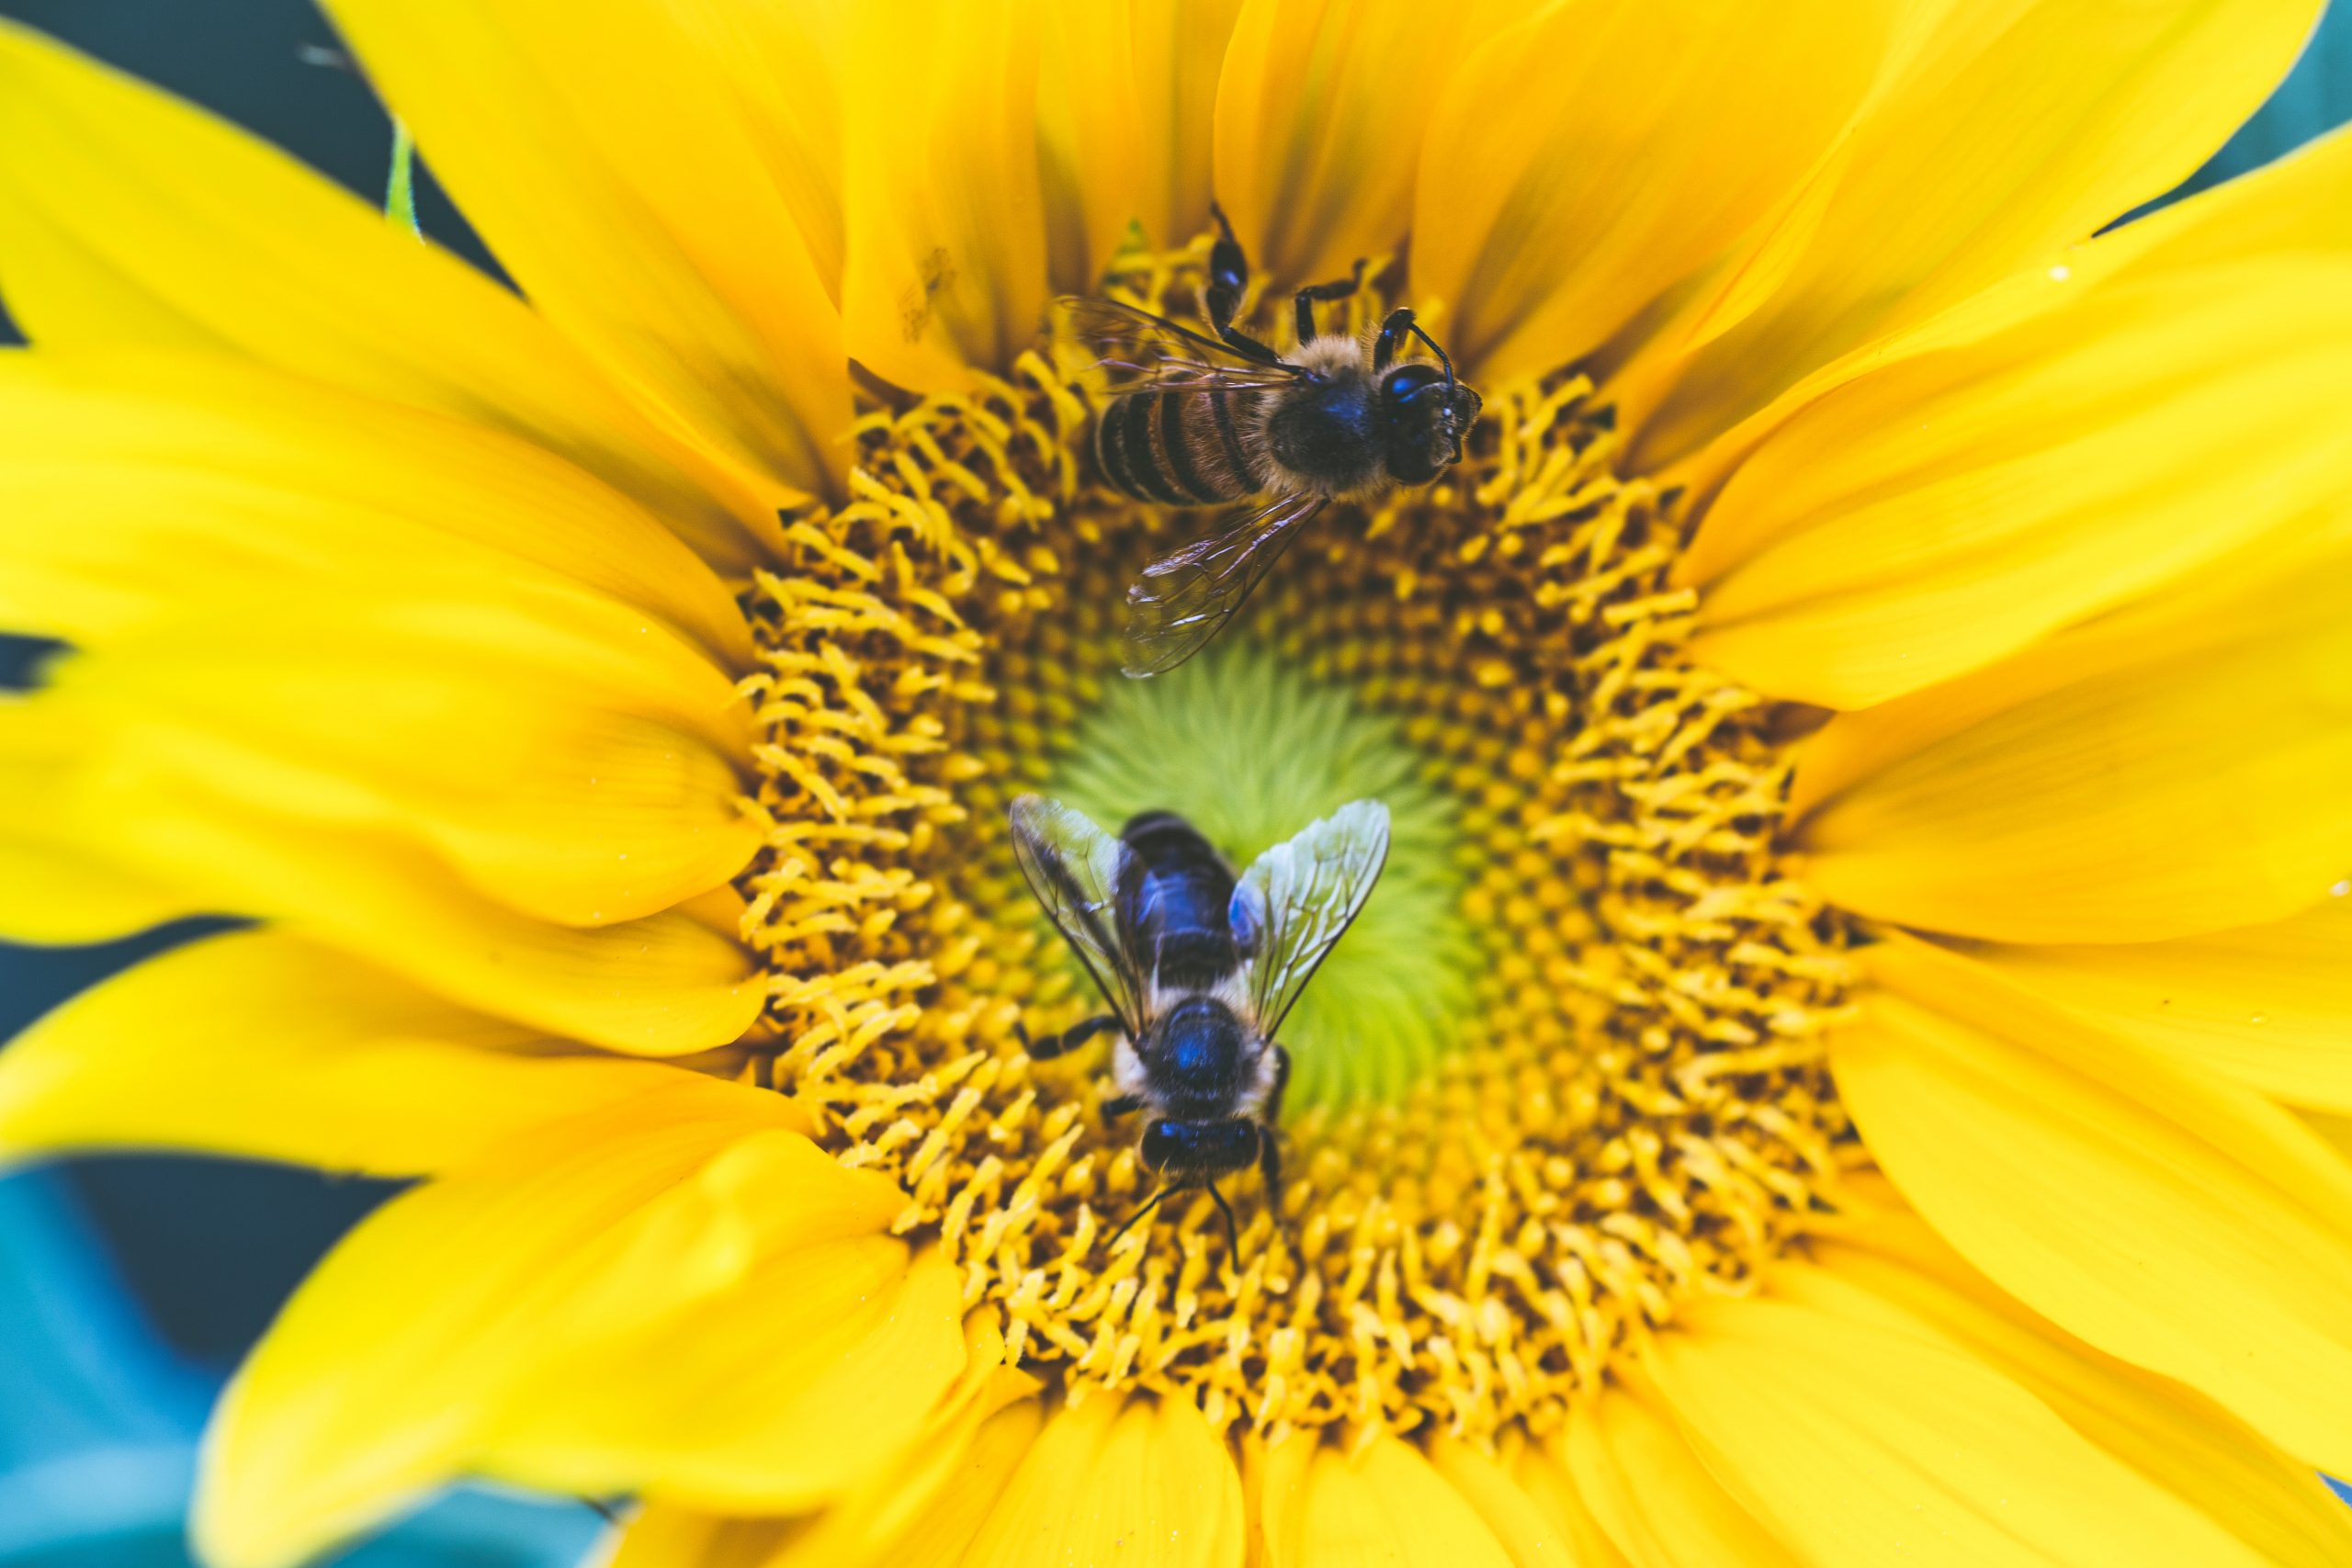 Bees of Wellbeing